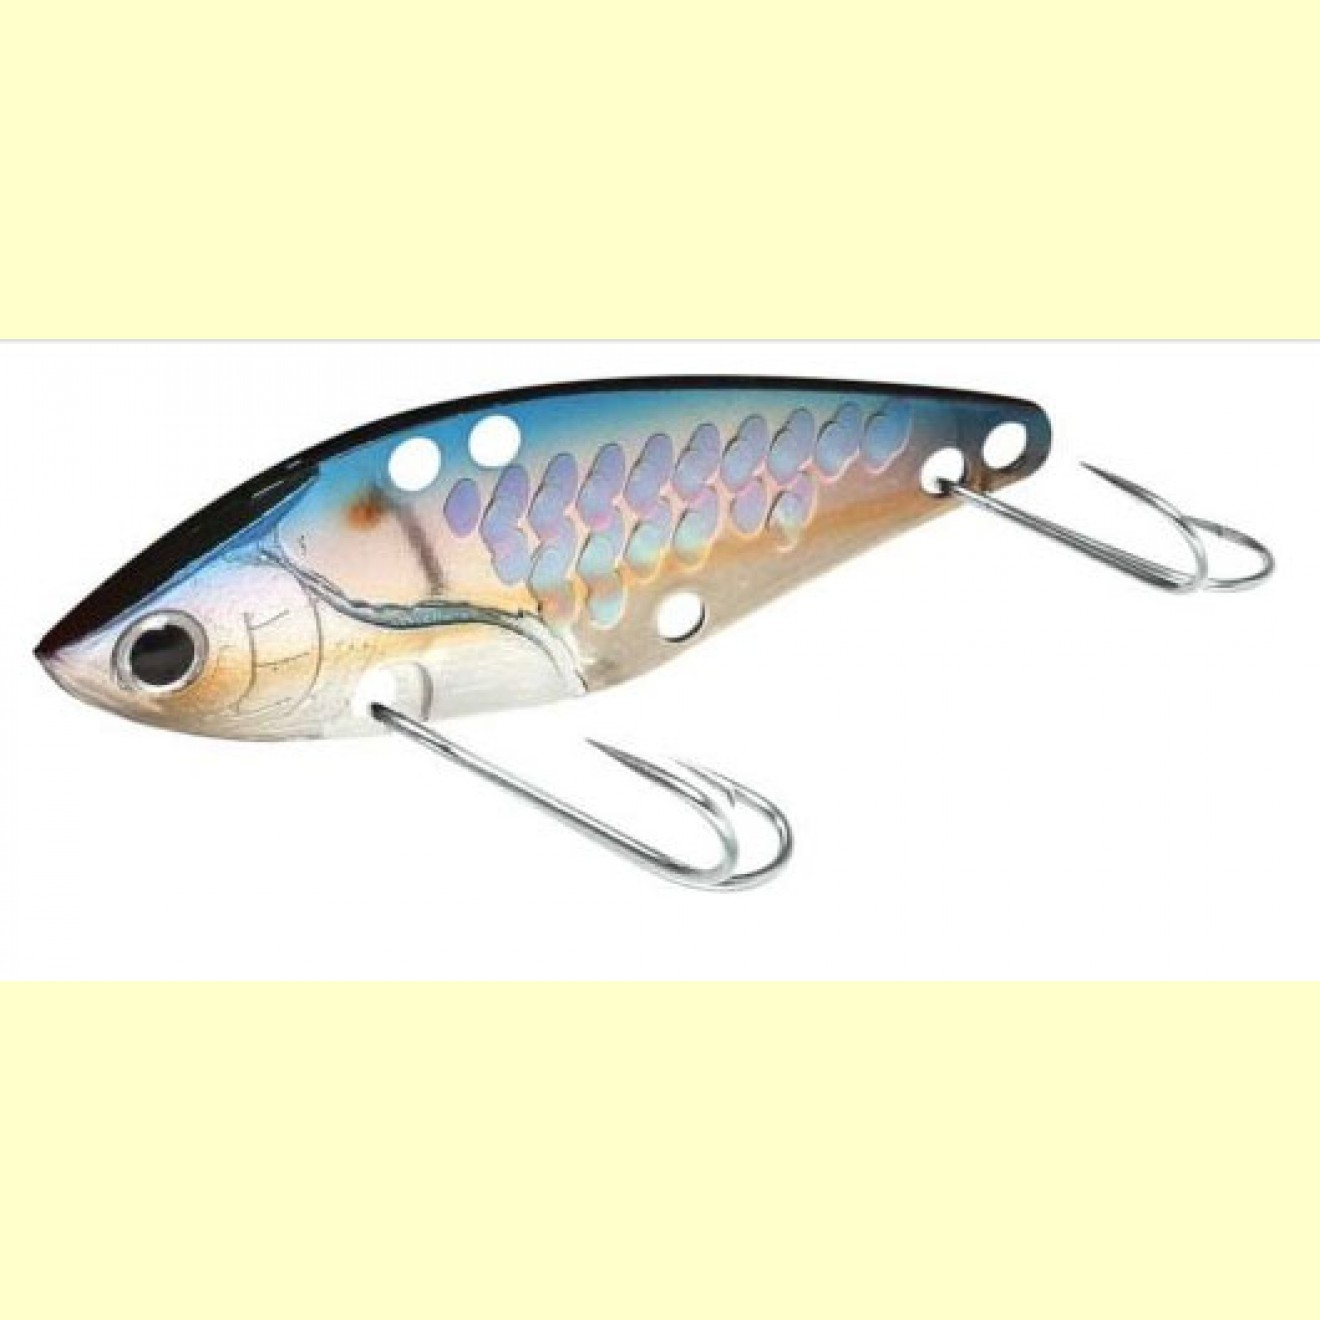 iLV - 10 g - MS American Shad - Lucky Craft